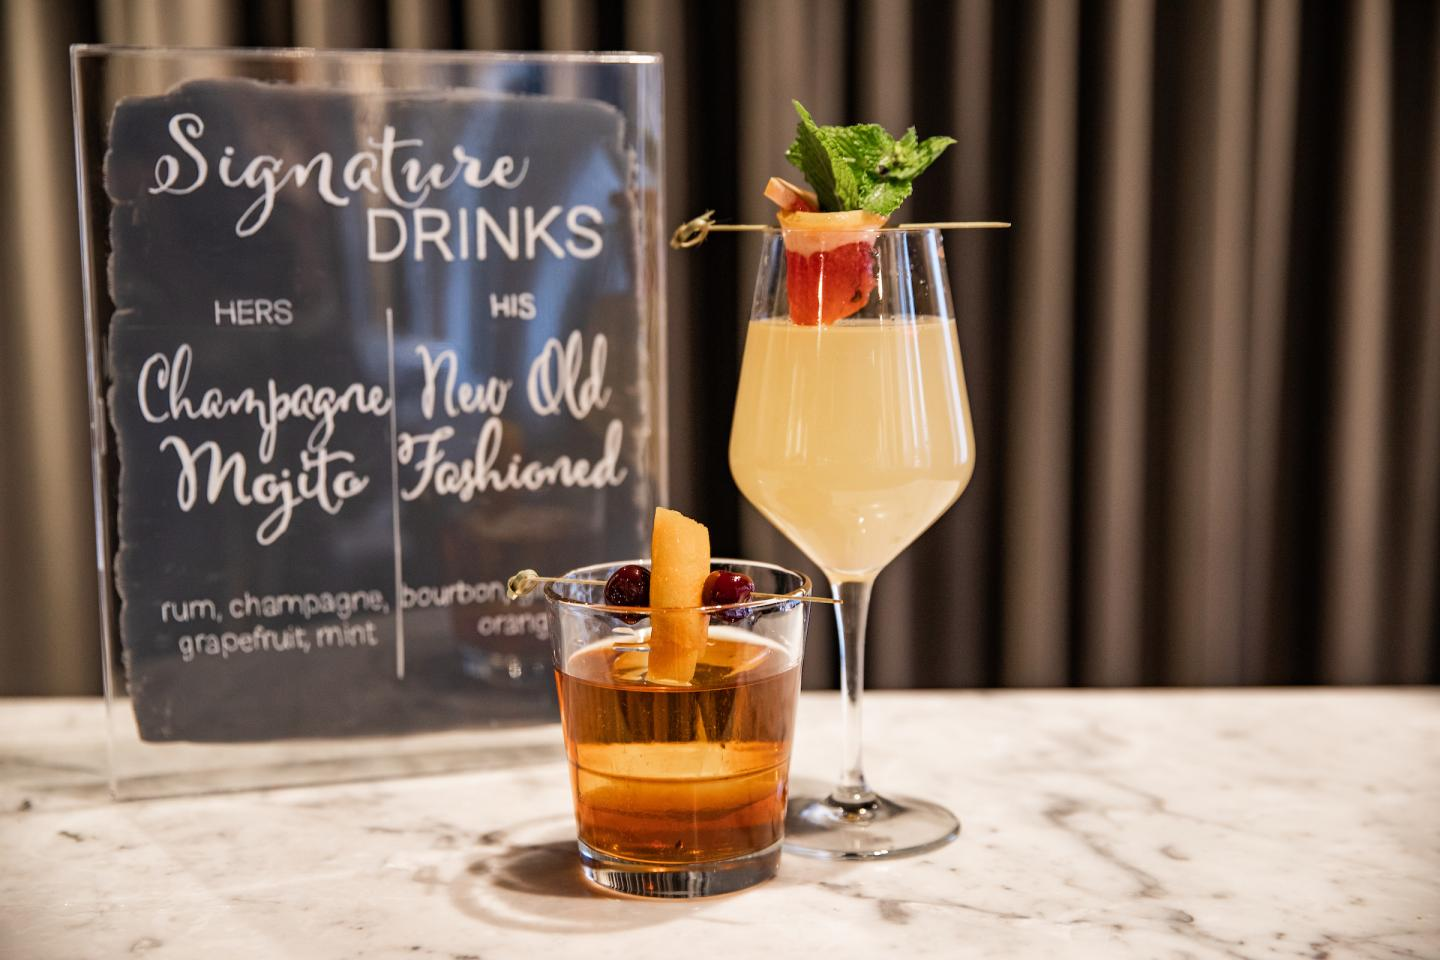 Signature cocktails at The Dalcy